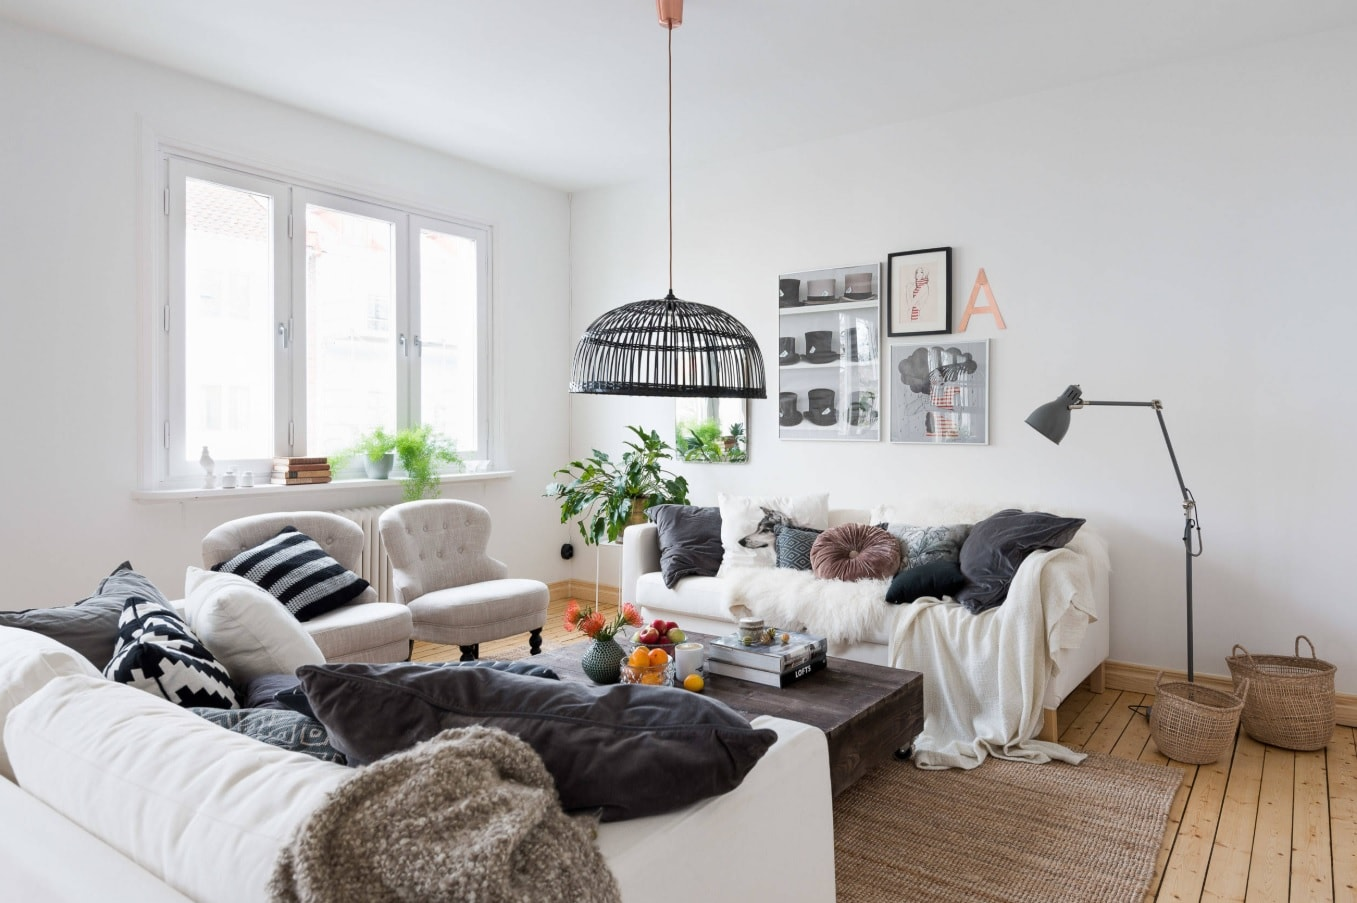 Nordic Interior Design Examples in Real Homes Photos. Absolutely white wall decoration for casual perception